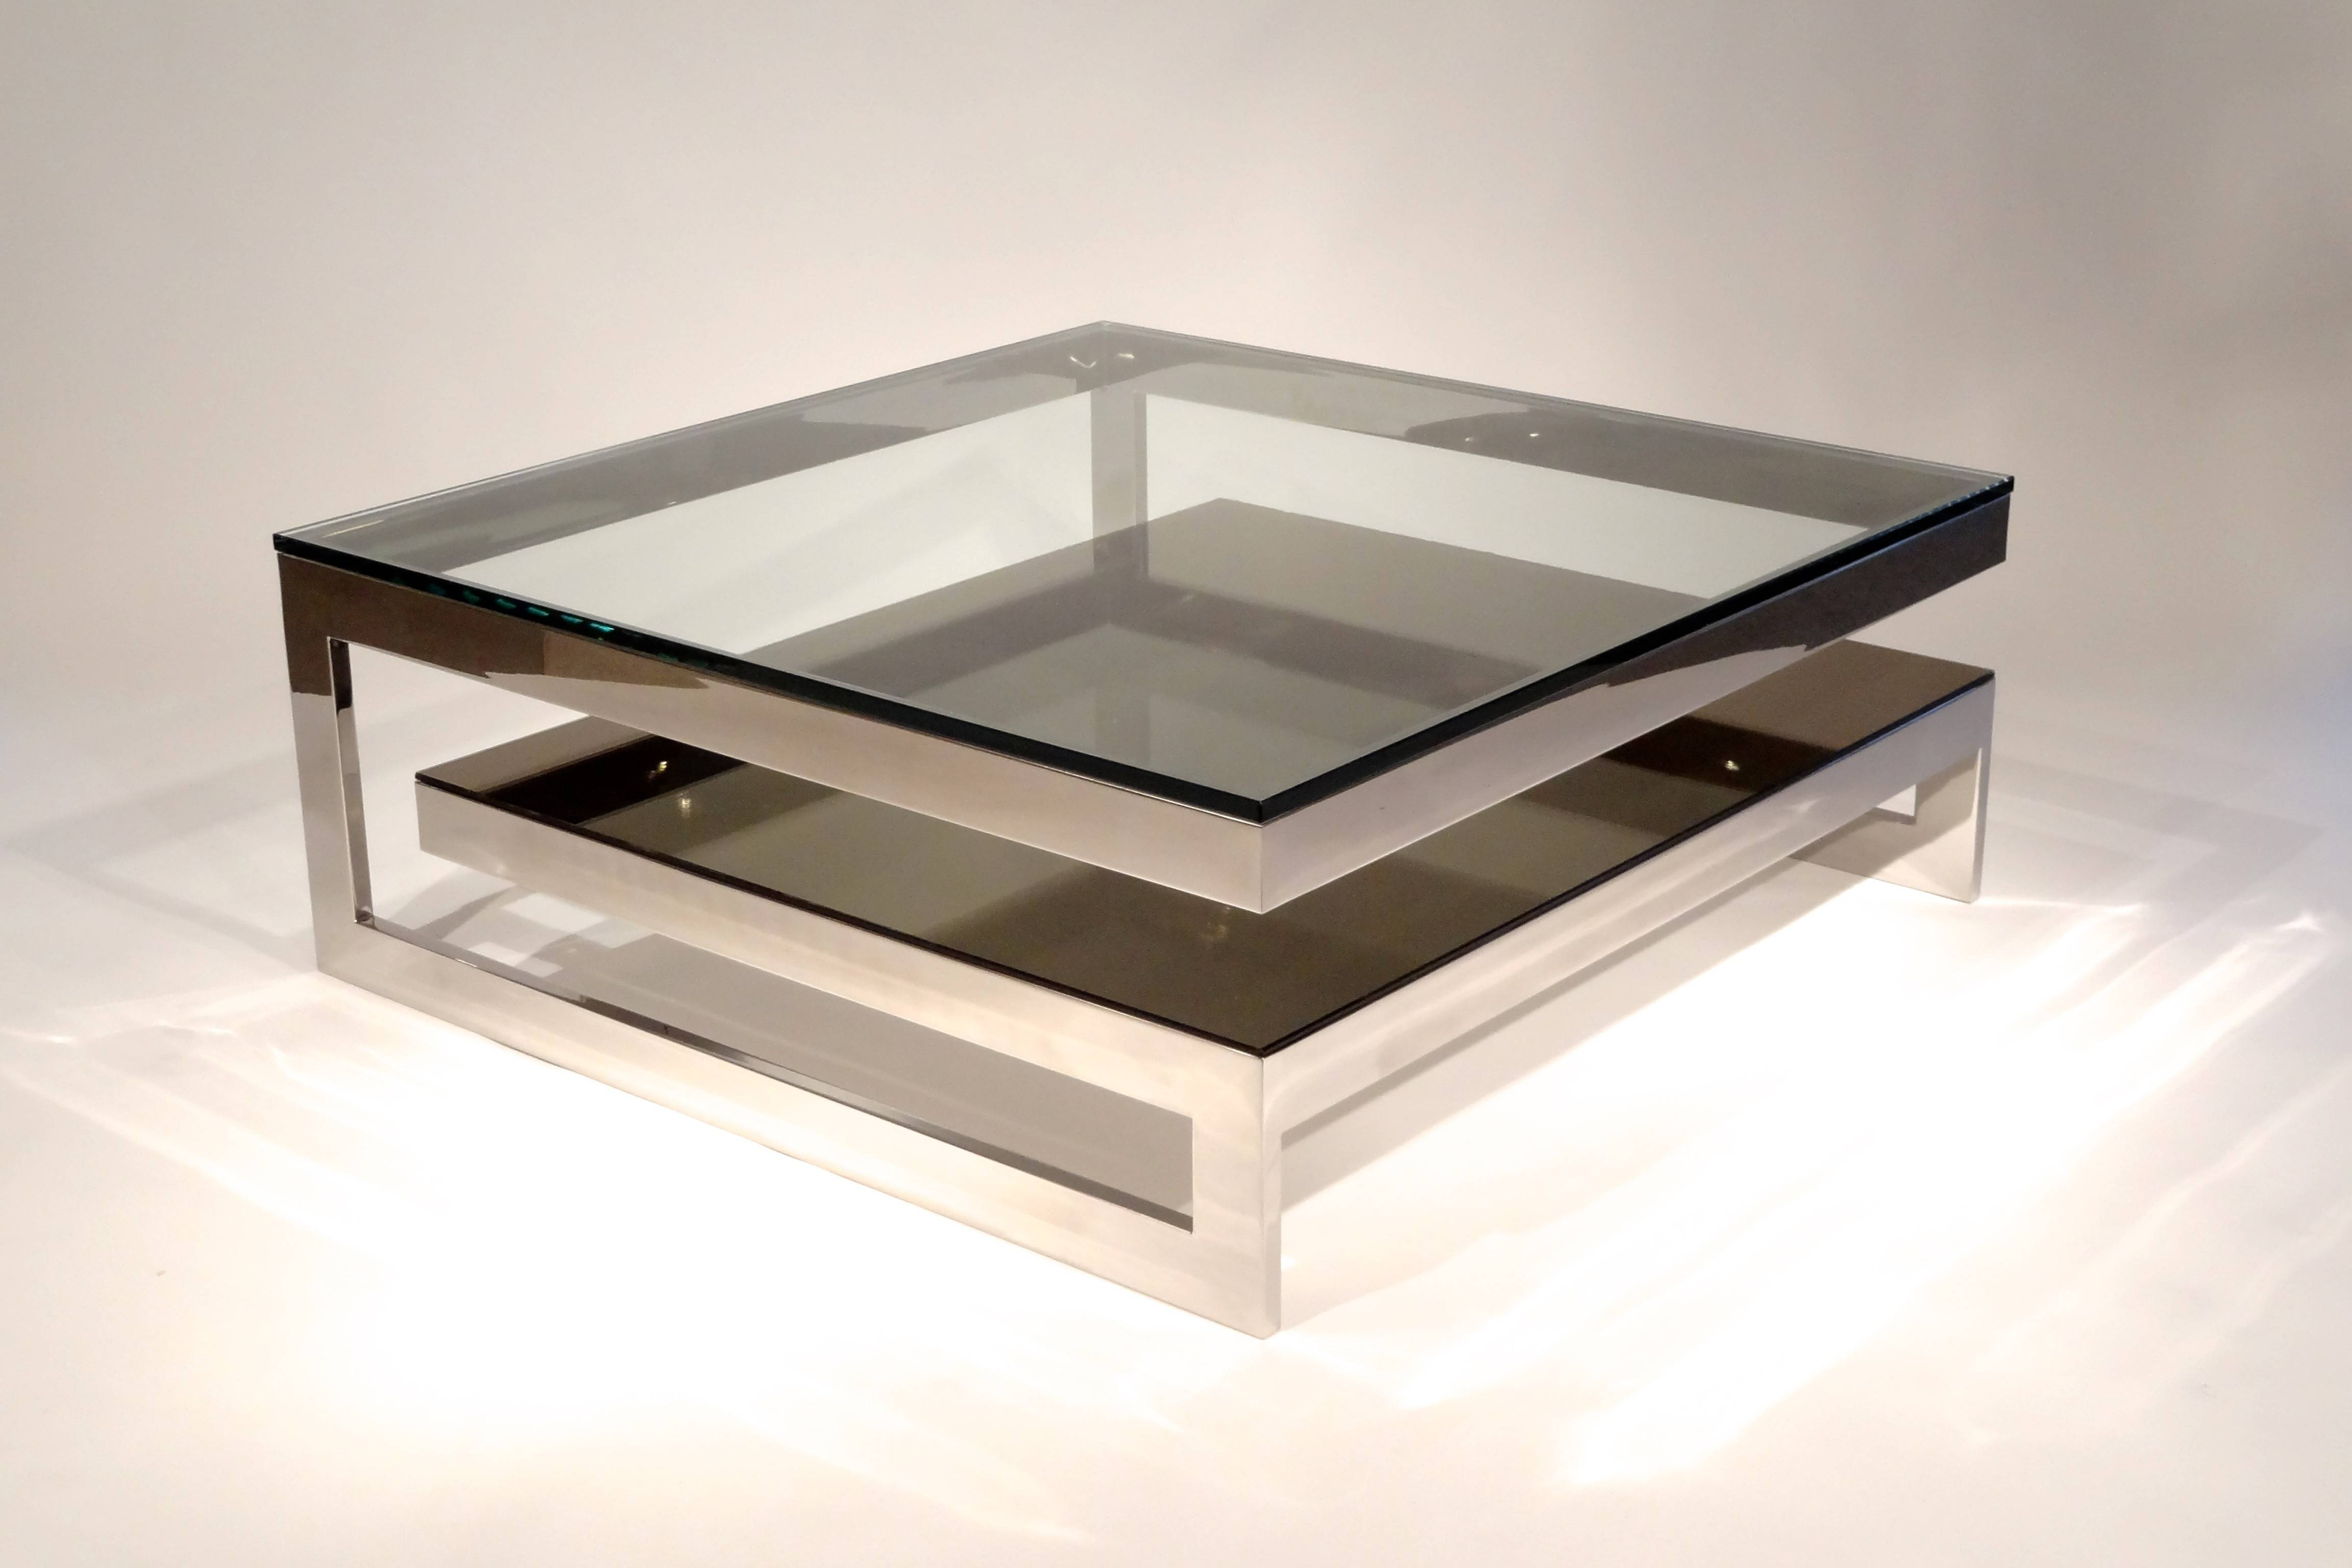 Sophisticated Modern Glass Coffee Table Accent Tables Modern Glass with regard to Glass Coffee Tables With Shelf (Image 25 of 30)